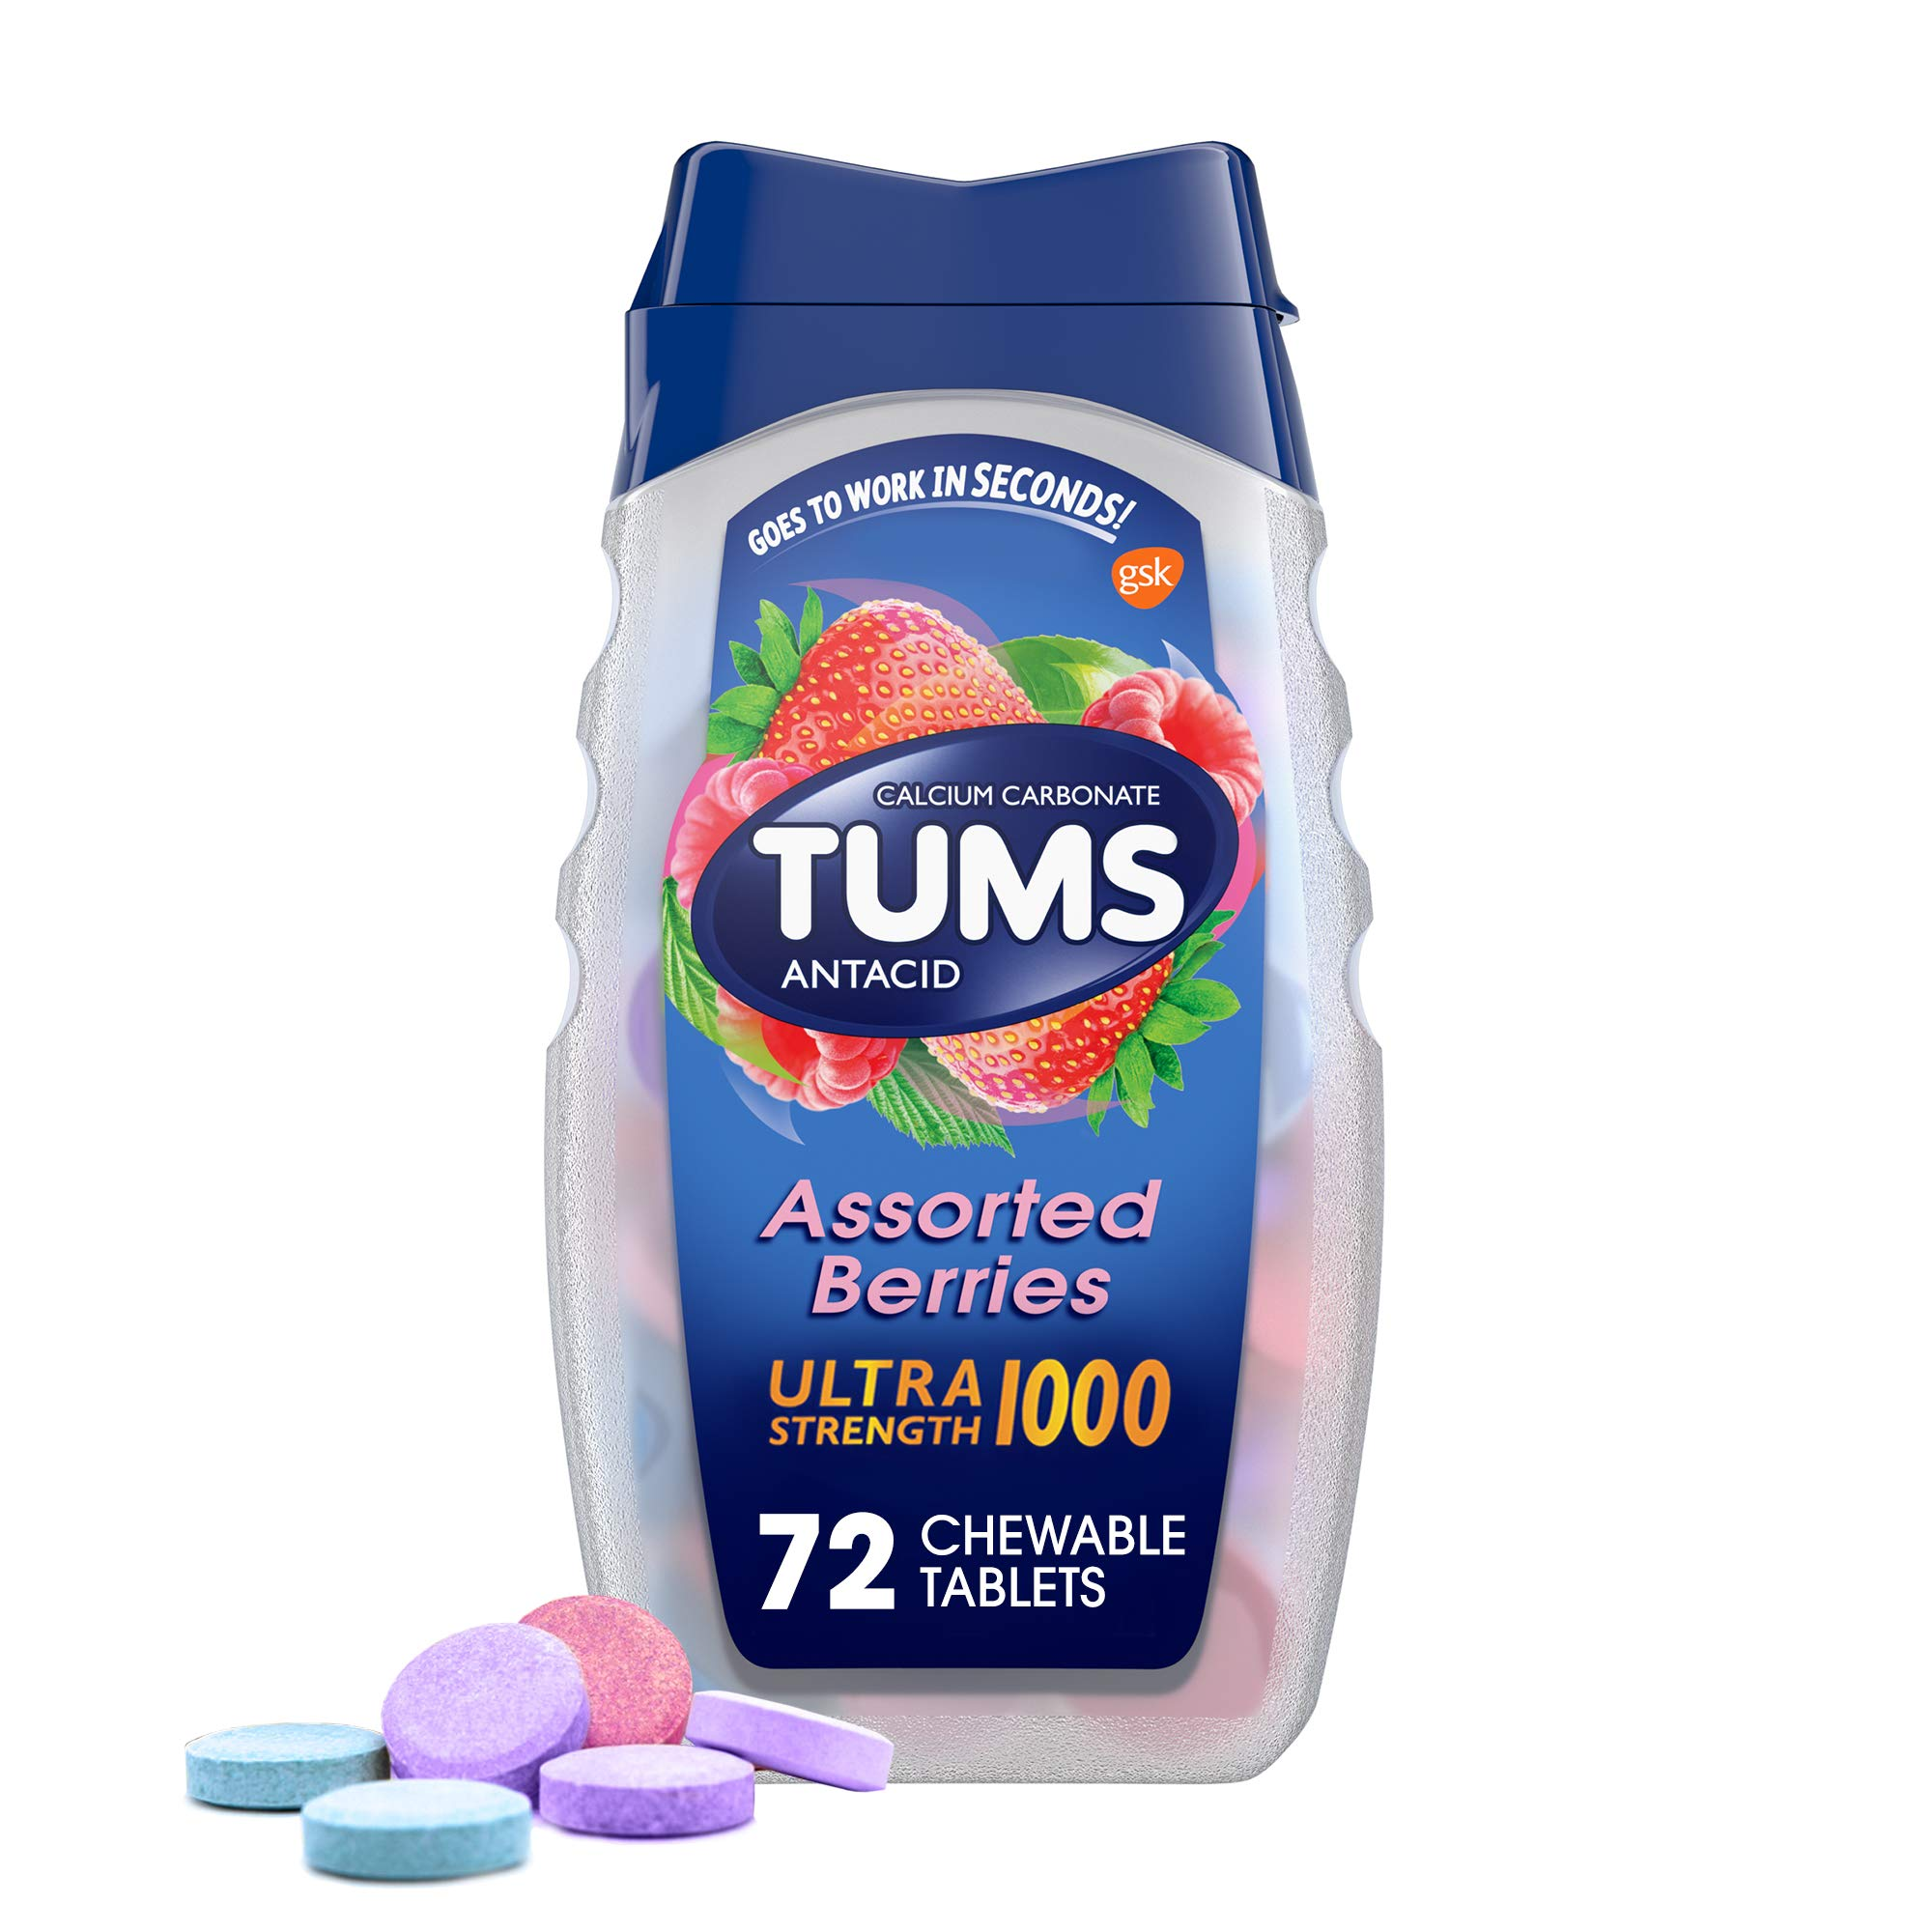 TUMS Ultra Strength Assorted Berries Antacid Chewable Tablets for Heartburn Relief, 72 count